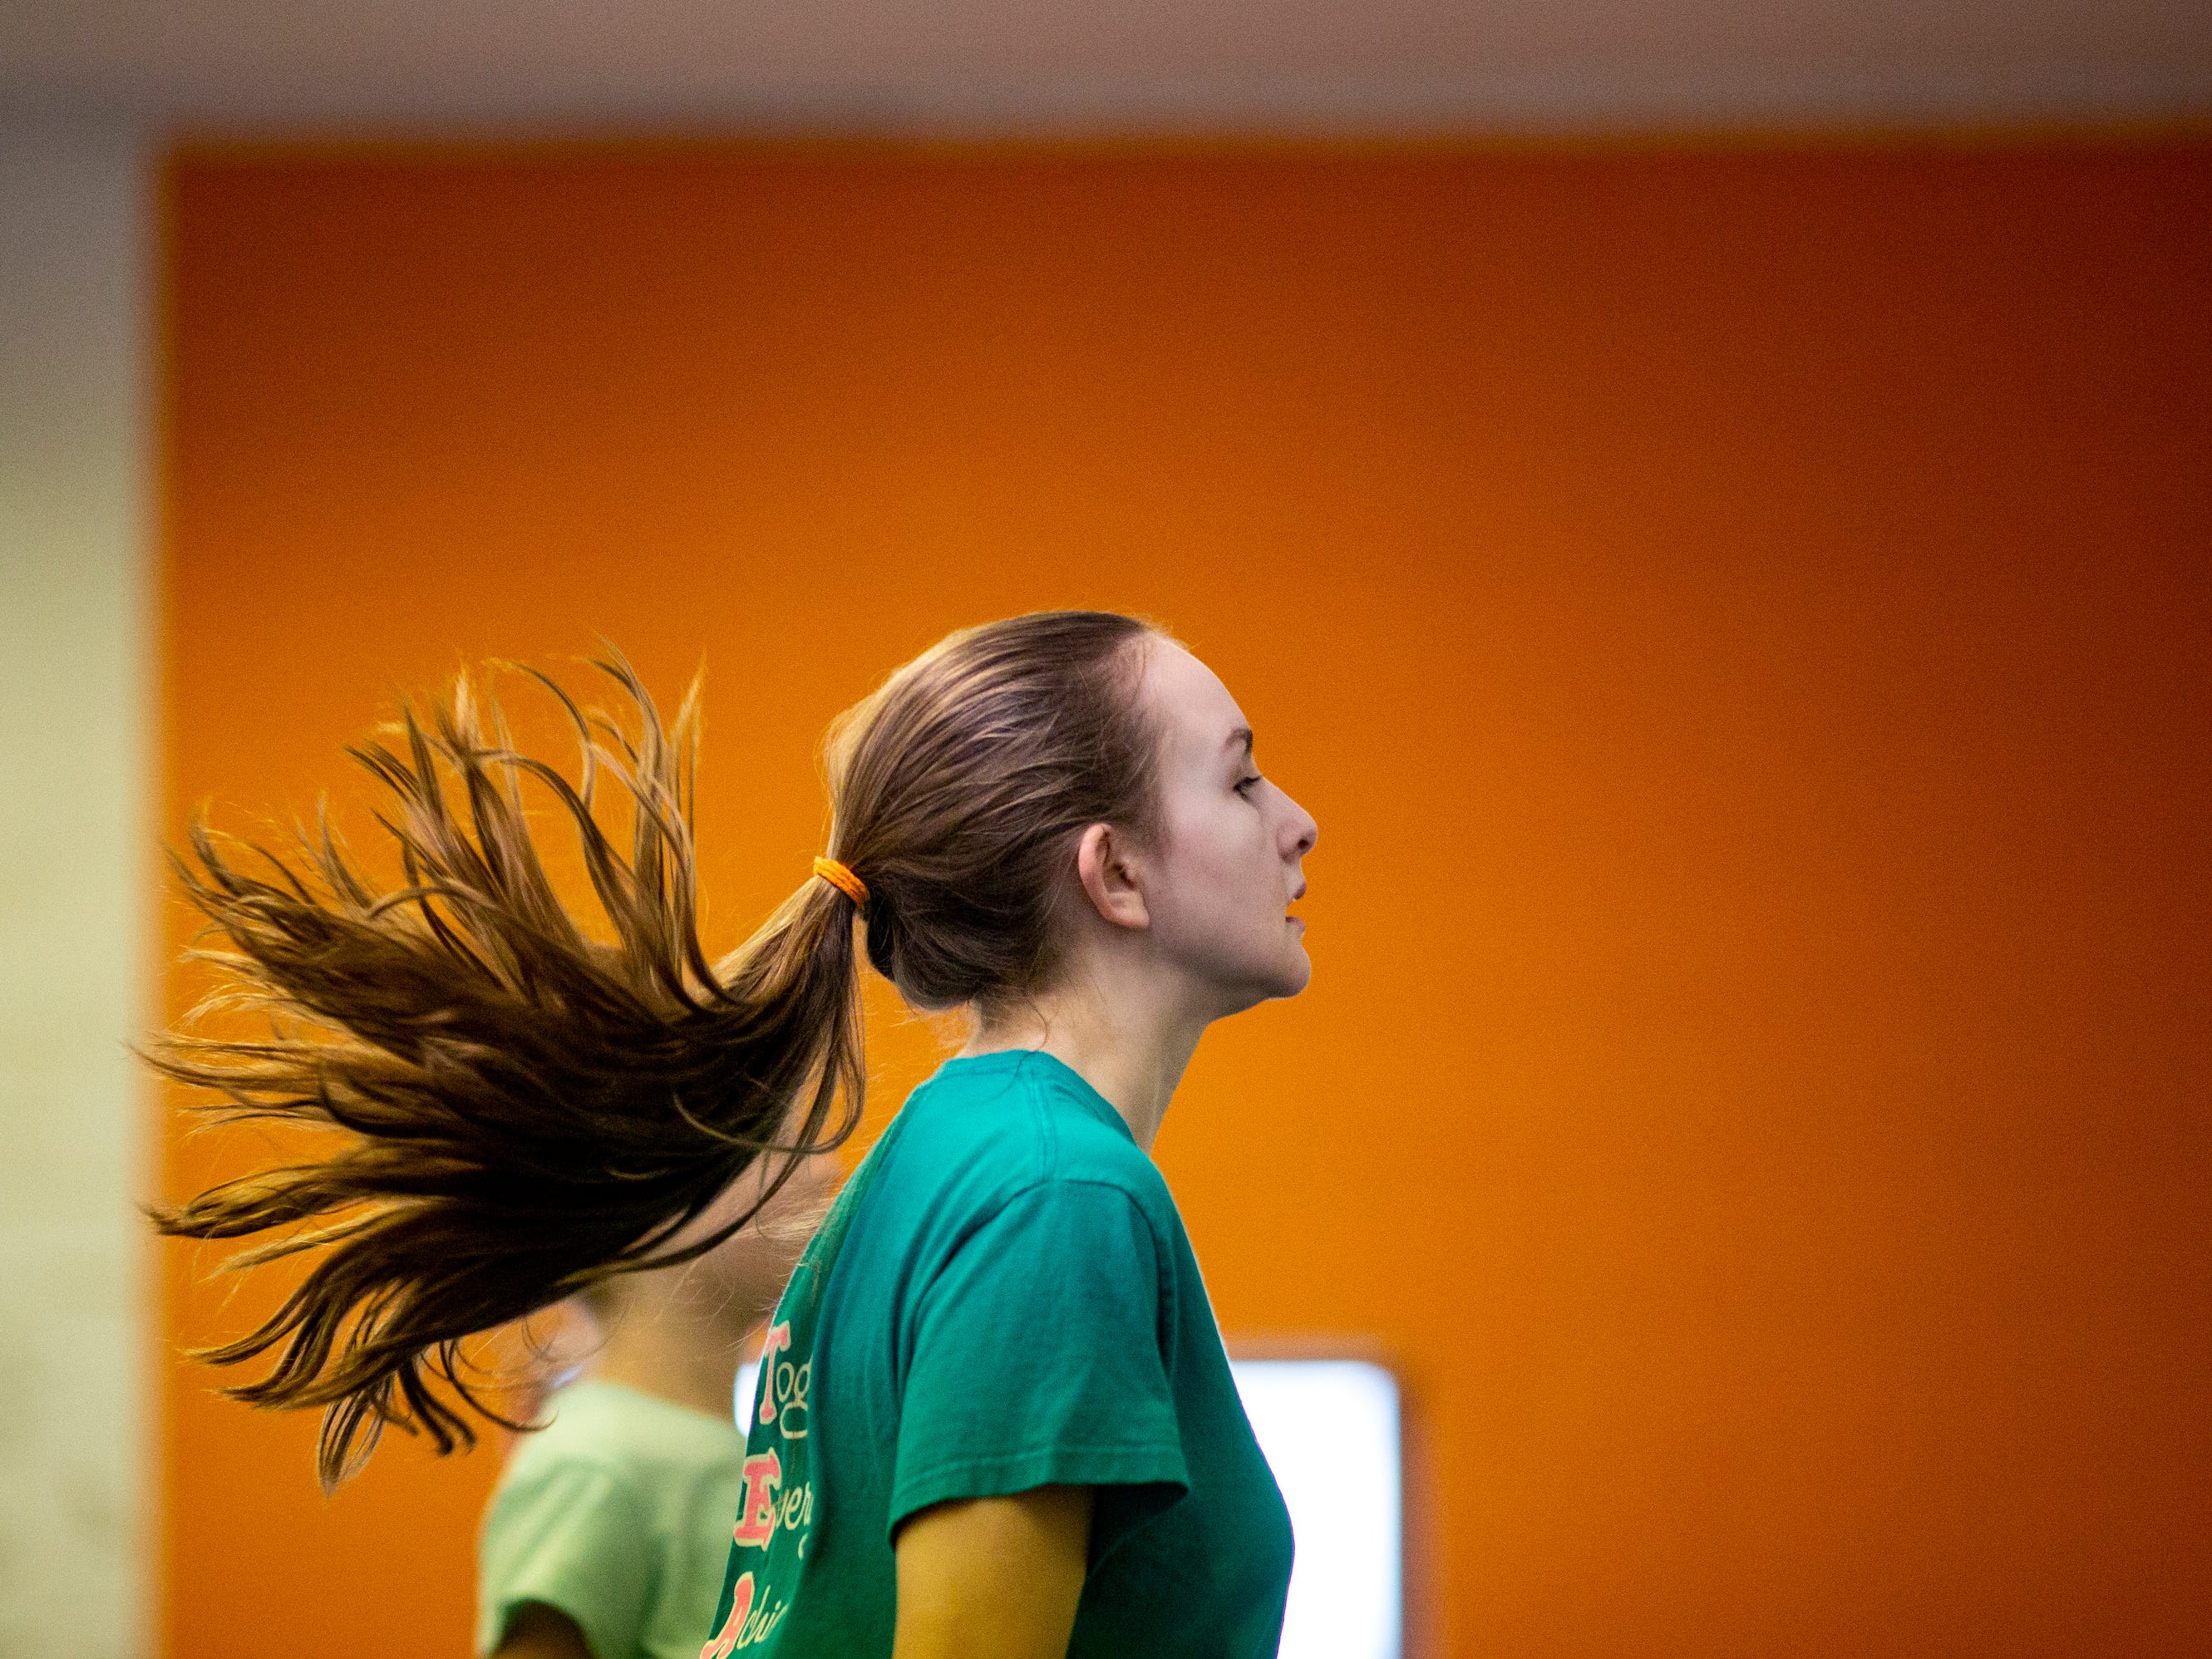 Avery Barter, 13, practices a jig at the Erickson Academy of Irish Dance studio in Linwood Thursday, March 14, 2019. The dancers will be performing at 2019 Cincinnati St. Patrick's Day Parade this weekend.